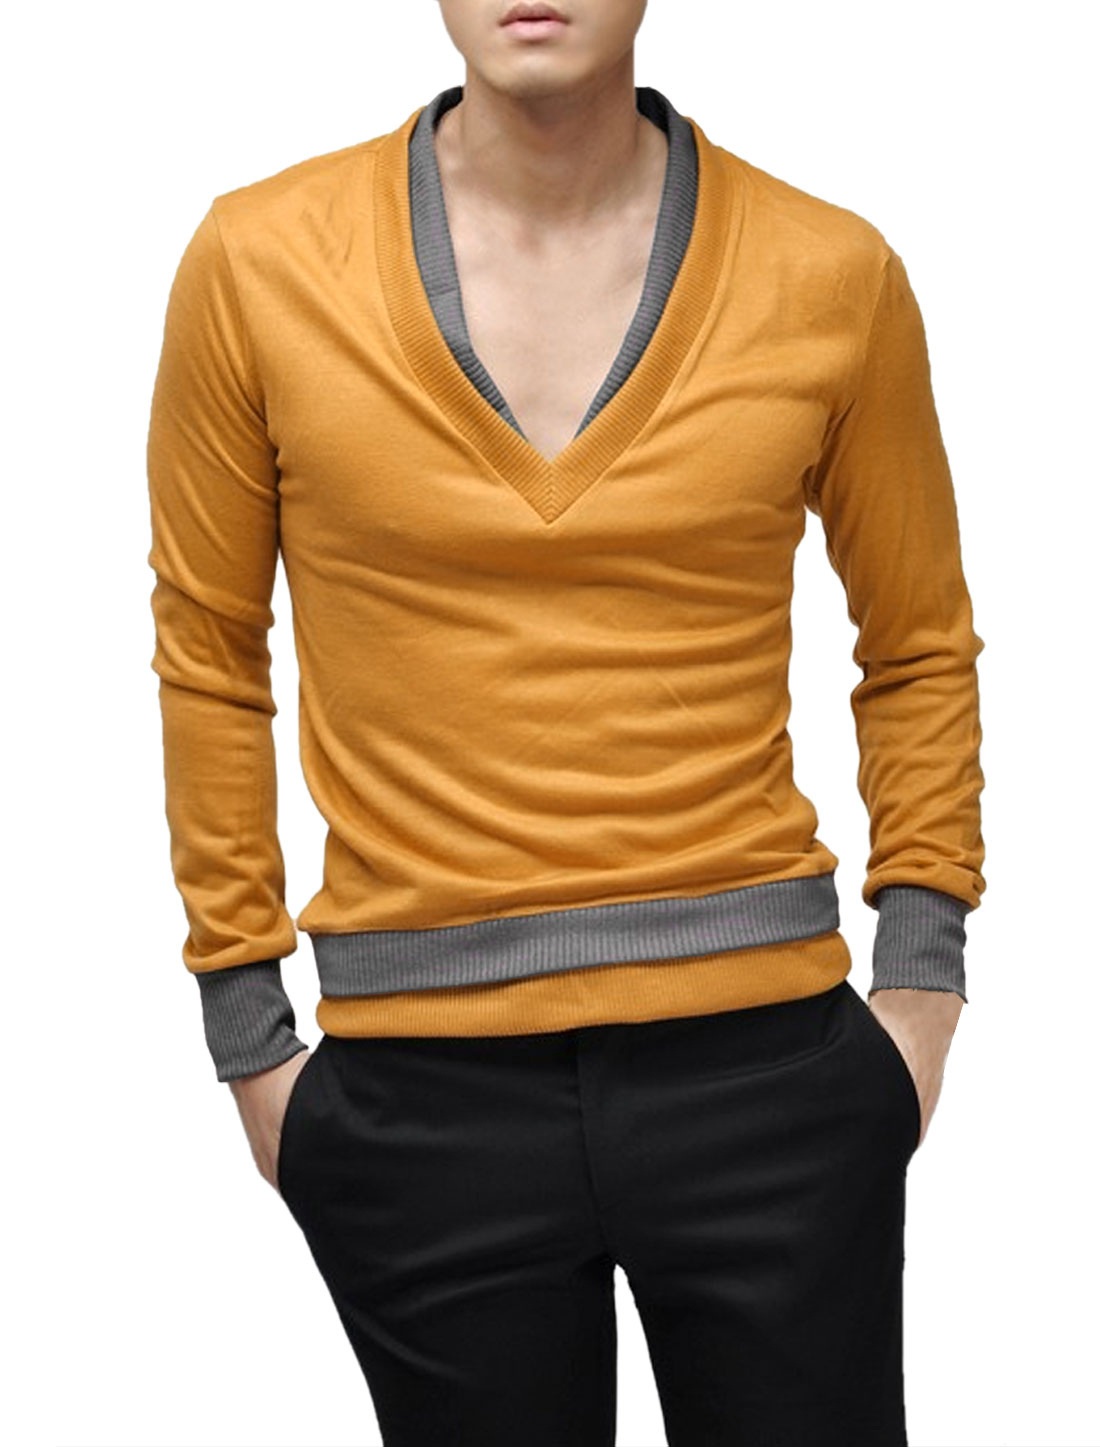 Men Chic Long Sleeve Ribbing Cuffs Pullover Top Dark Yellow S